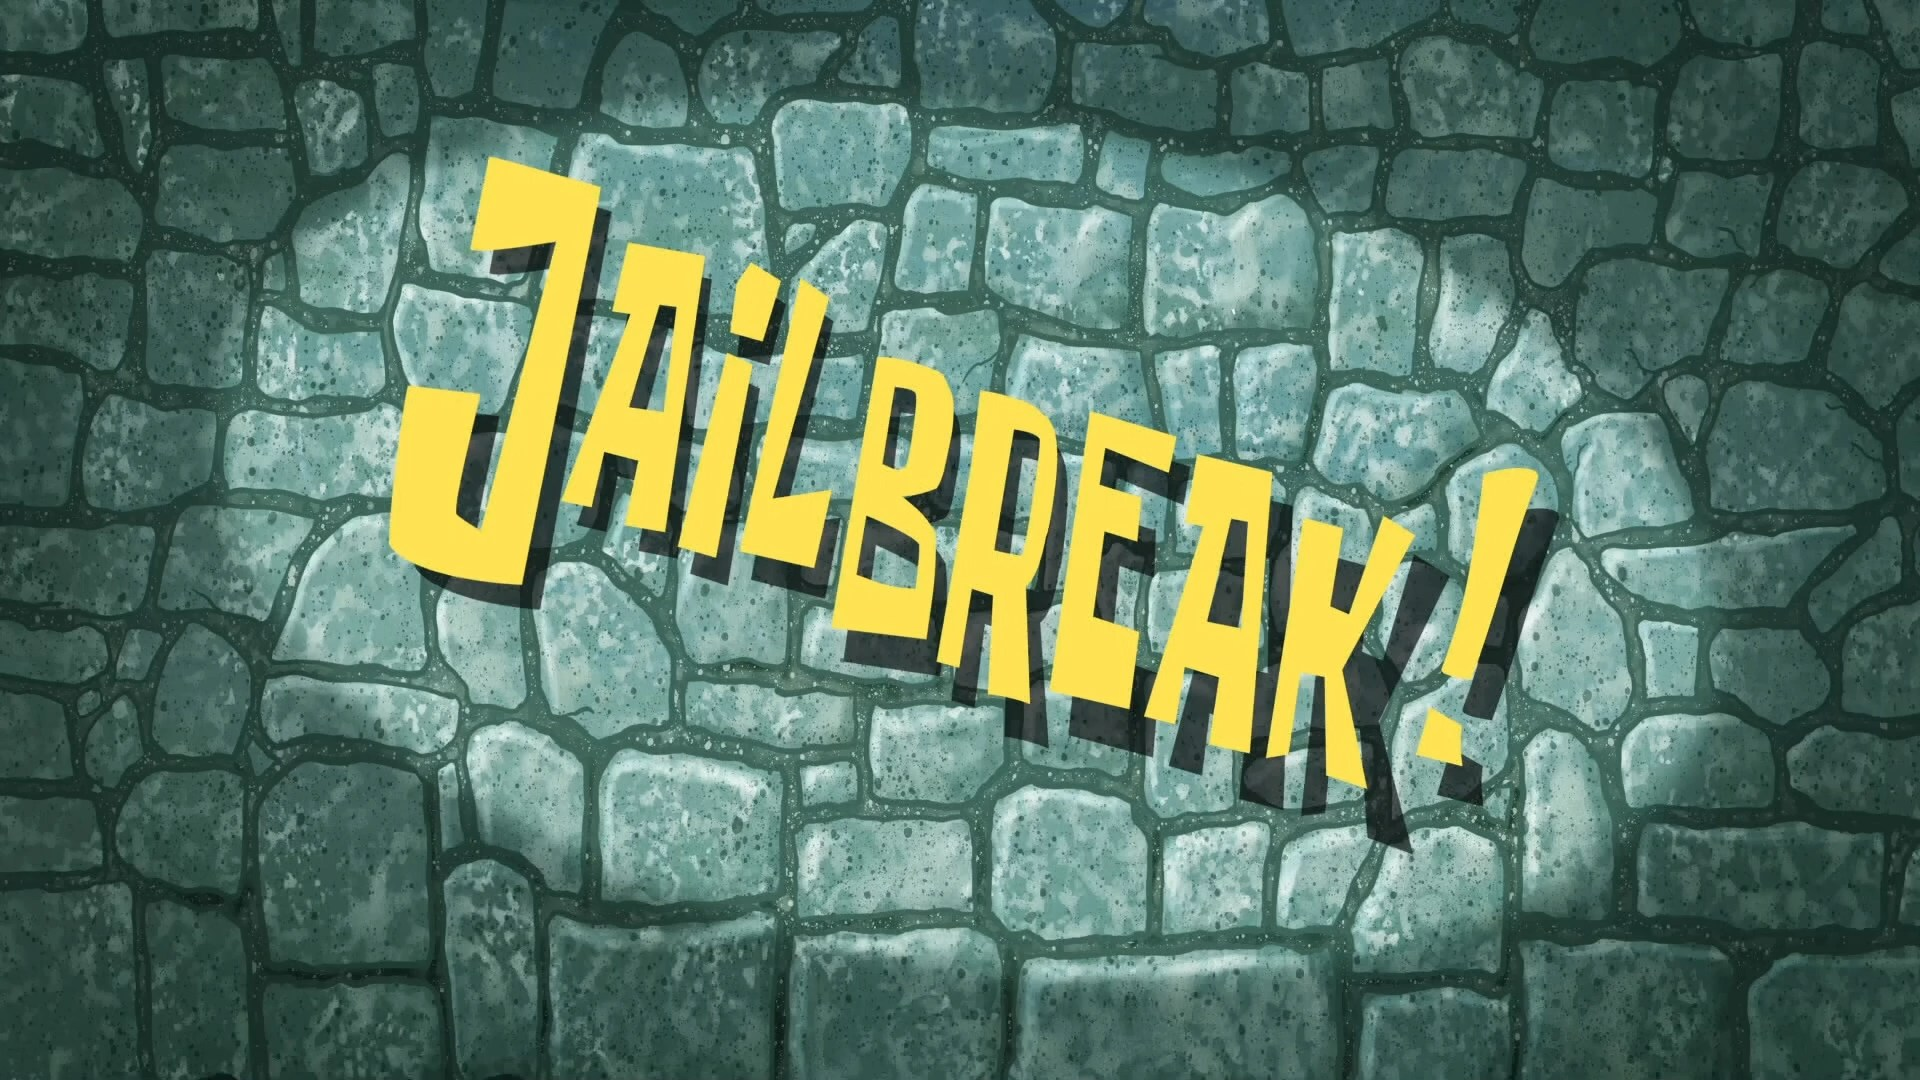 Jailbreak! | Encyclopedia SpongeBobia | FANDOM powered by ...